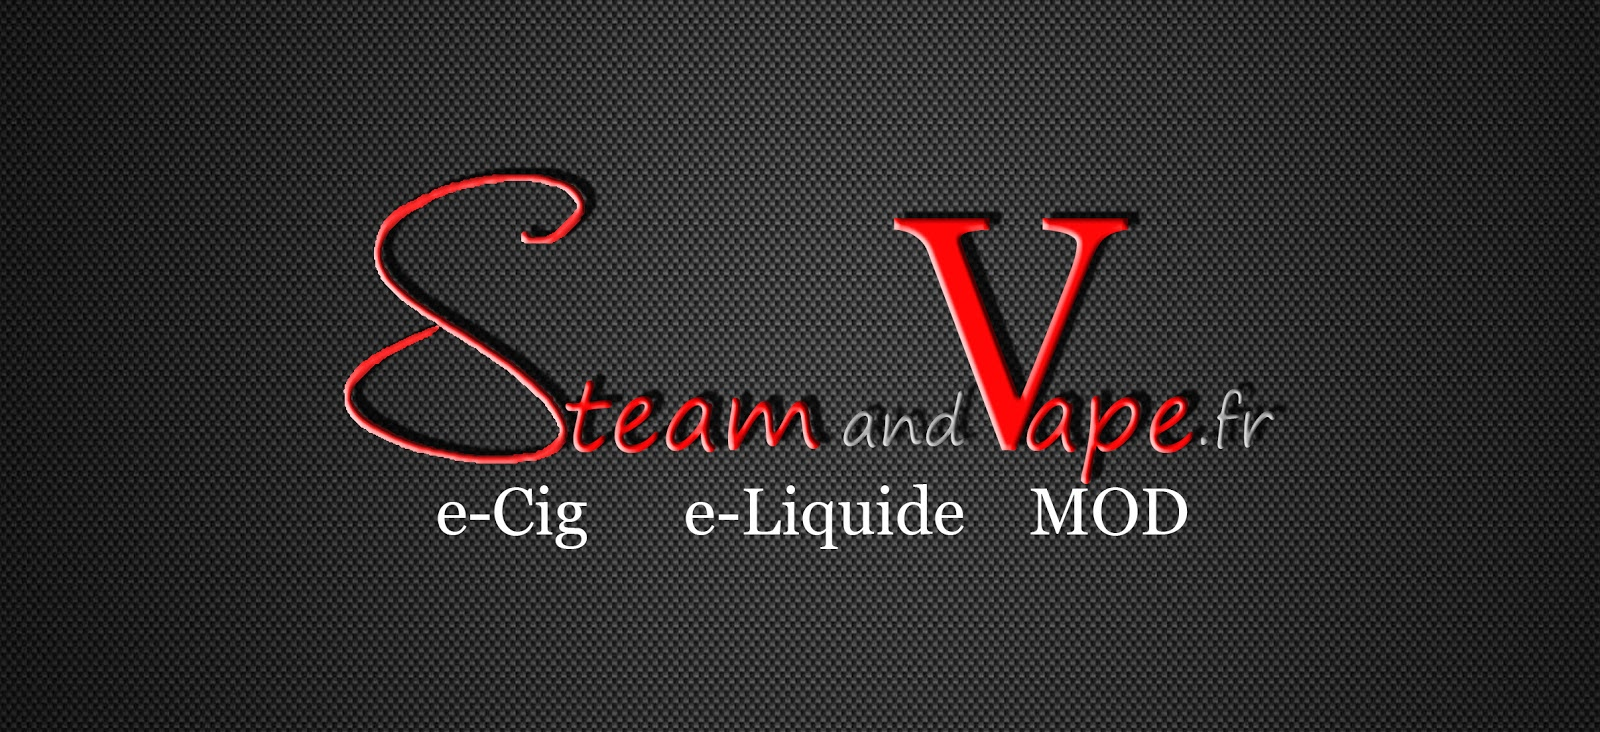 Steam and Vape